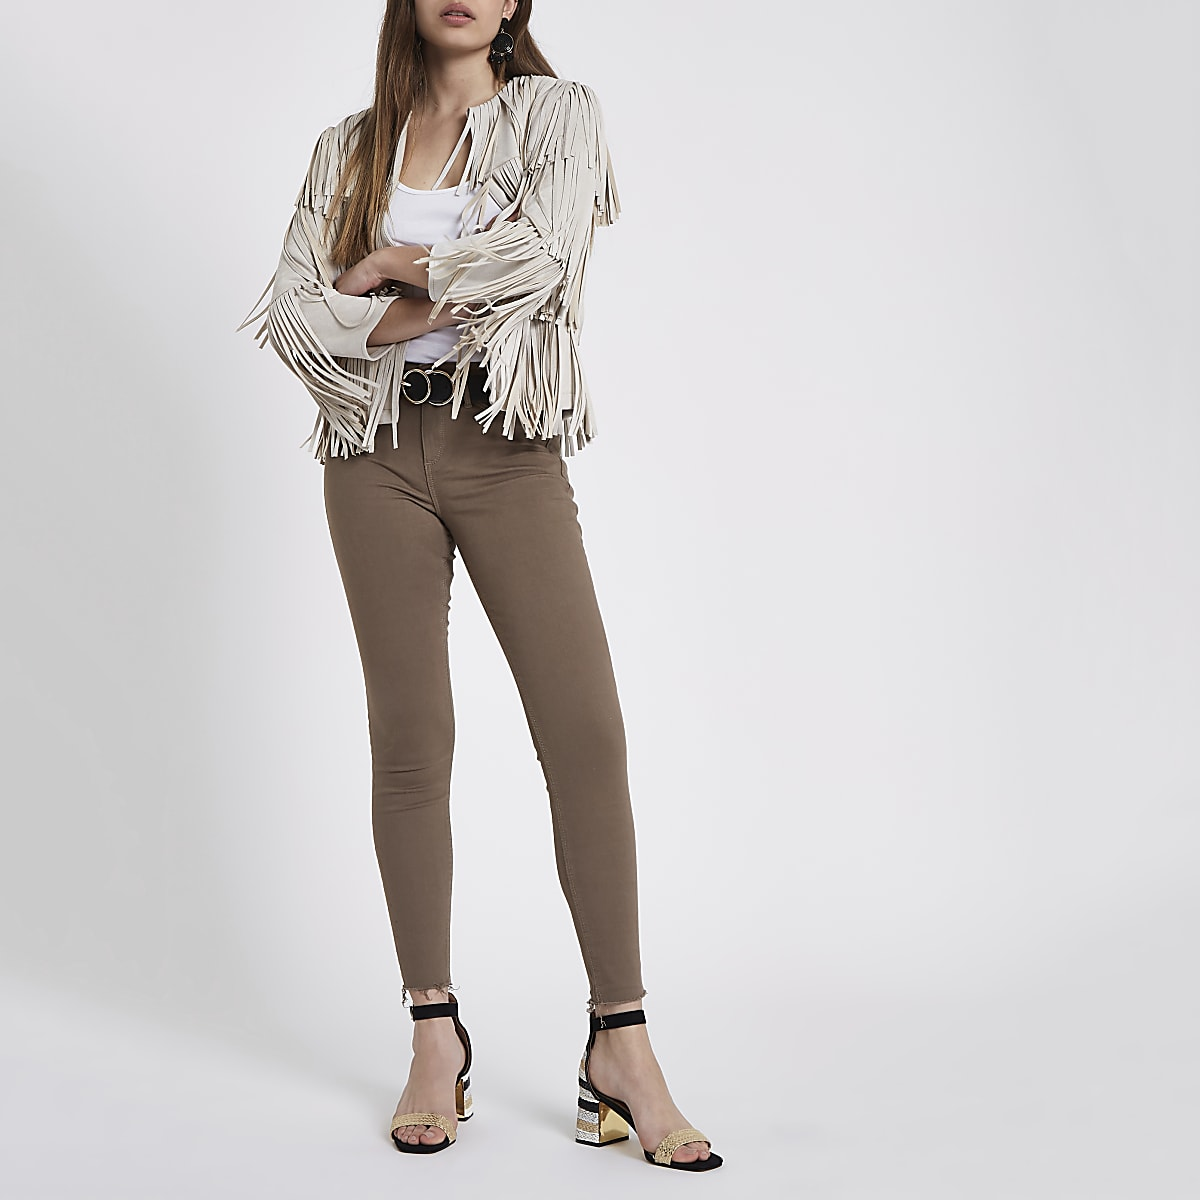 Khaki Molly mid rise ripped hem jeggings